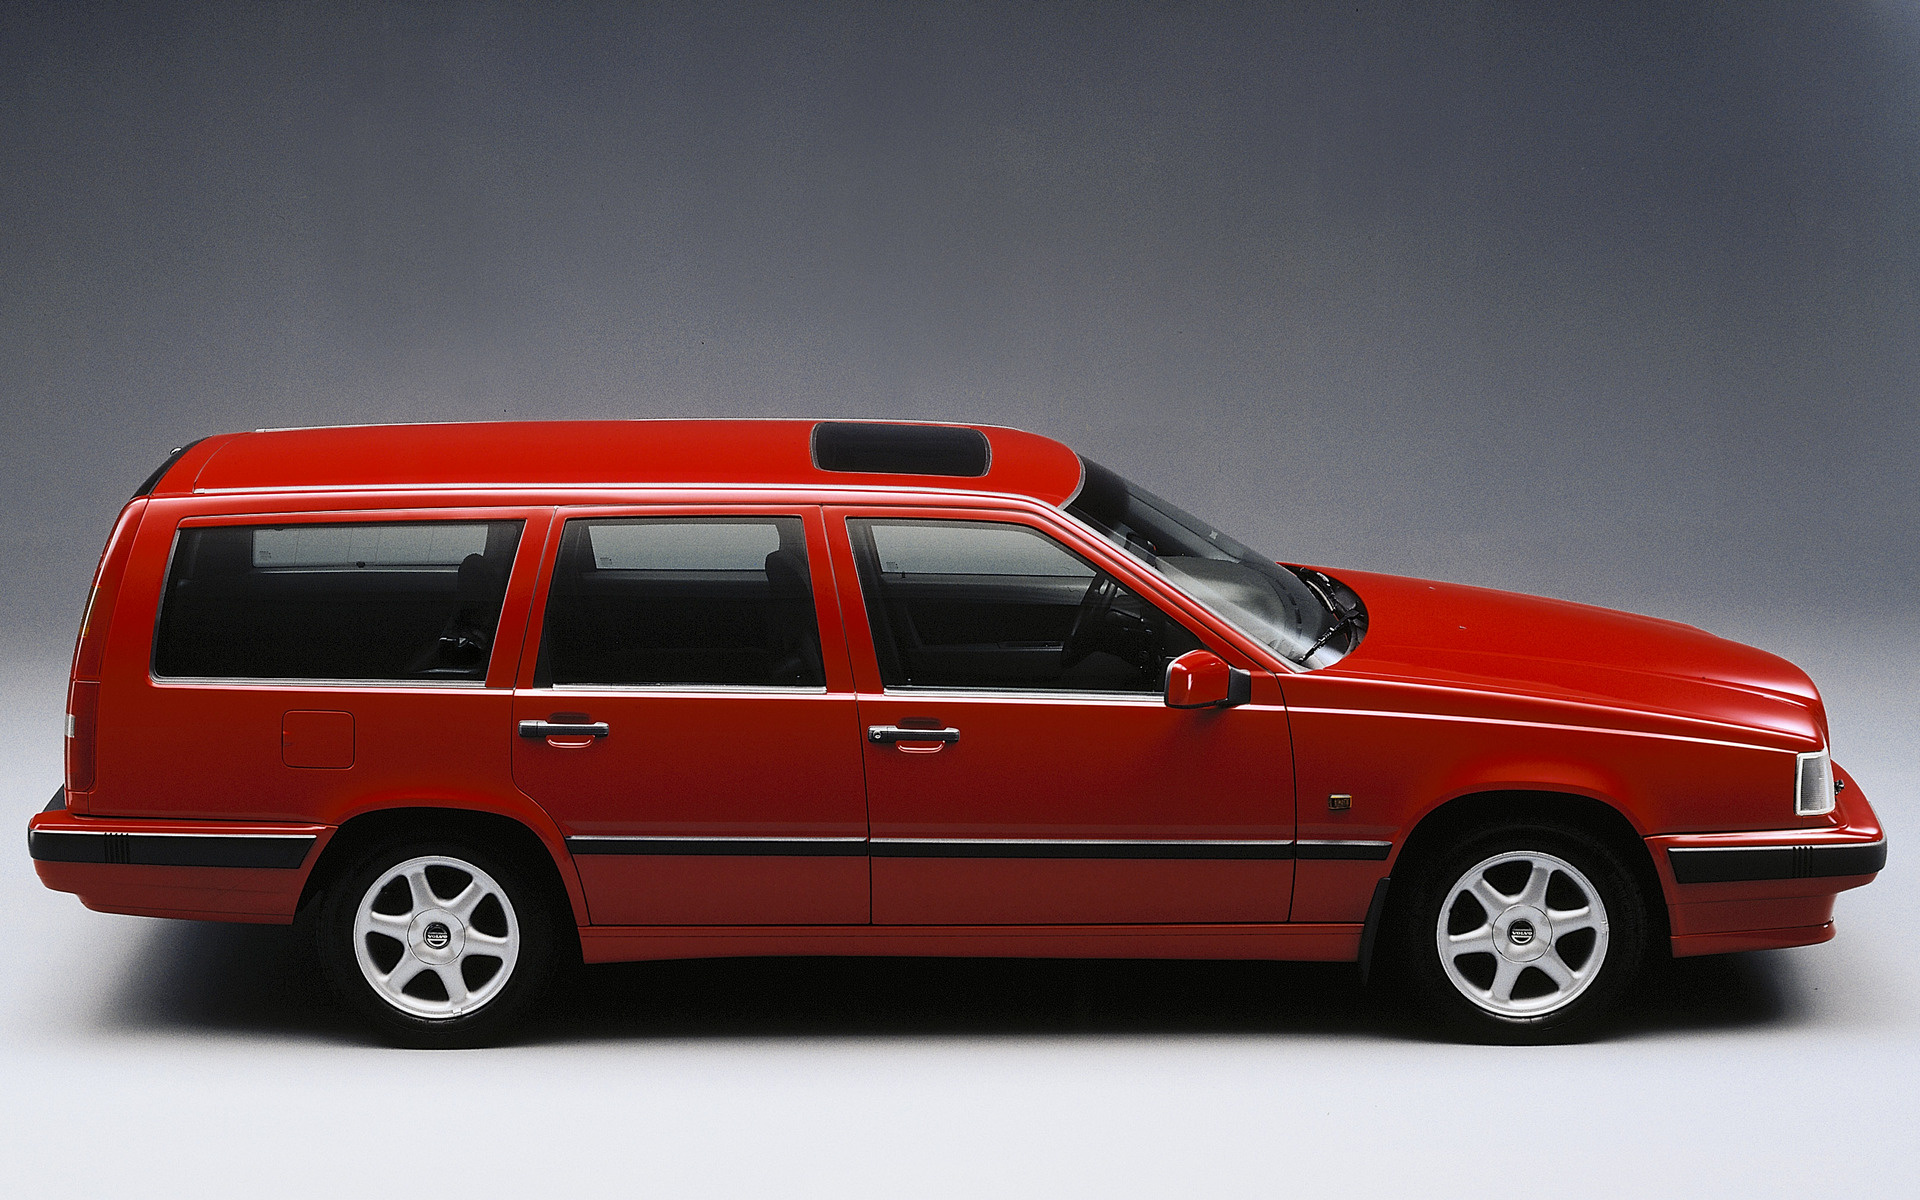 1992 Volvo 850 GLT Kombi - Wallpapers and HD Images | Car ...